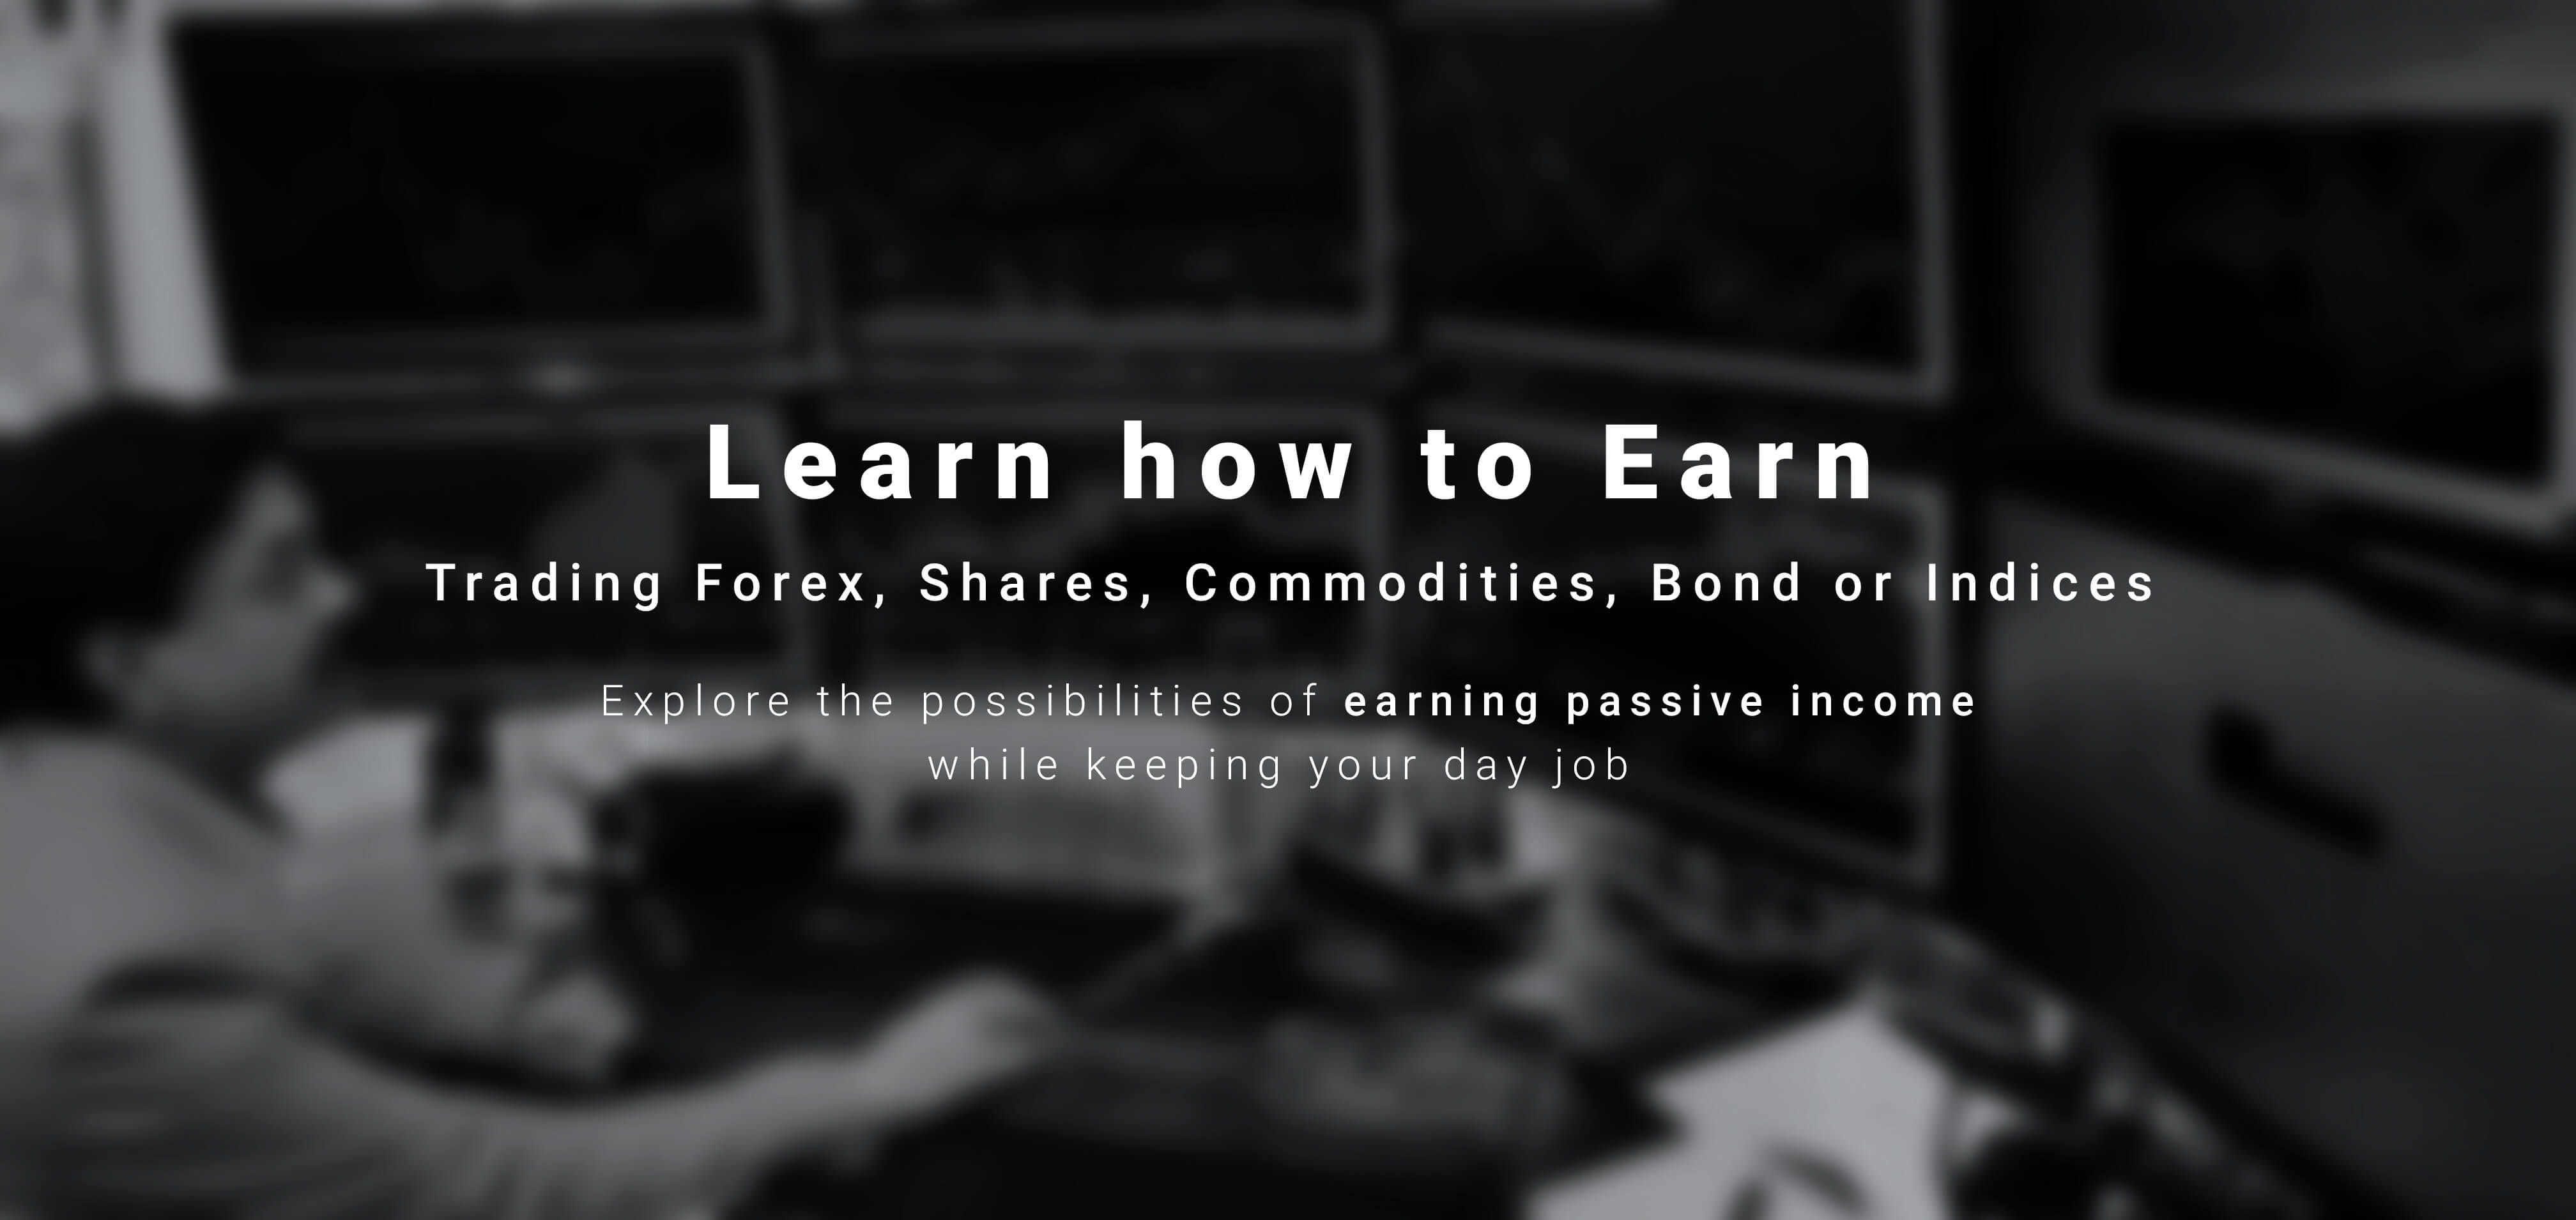 Learn how to Trade Forex, Shares, Commodities, Cryptos, Bonds, Indices